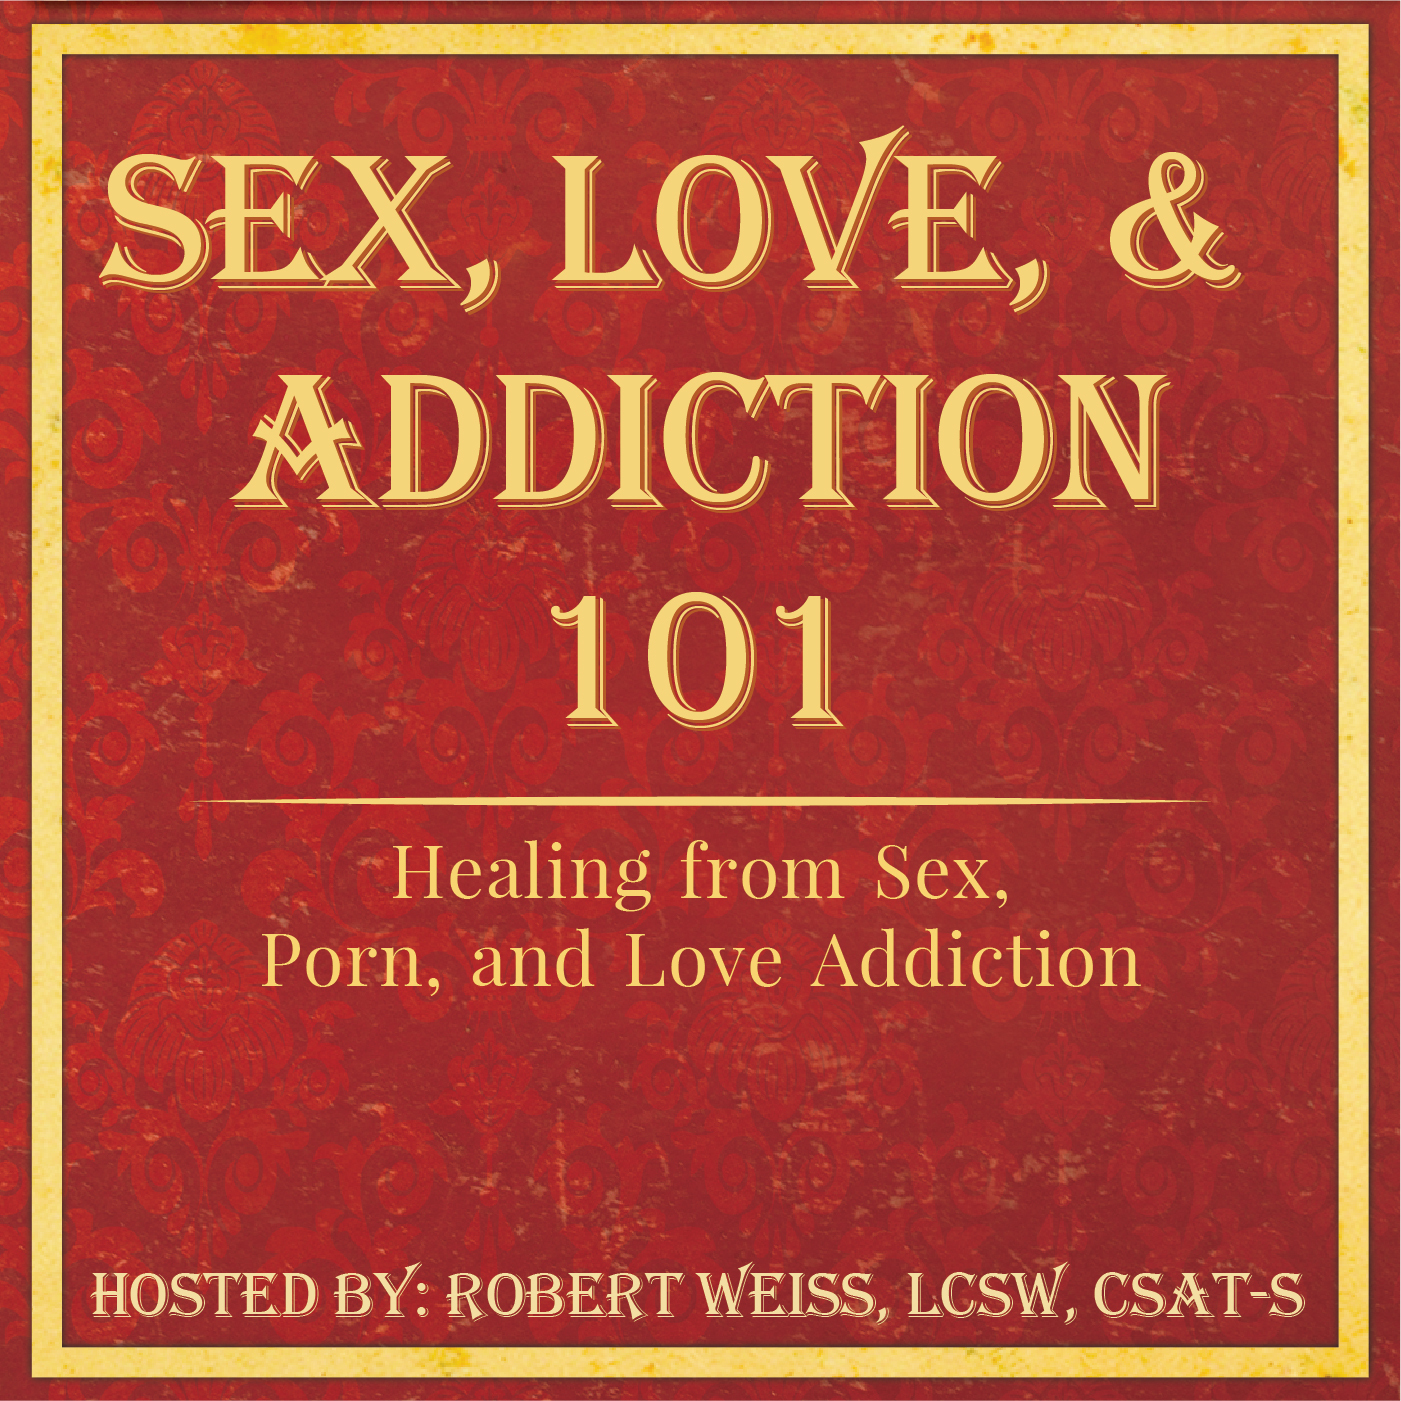 Dating a sex addict in recovery